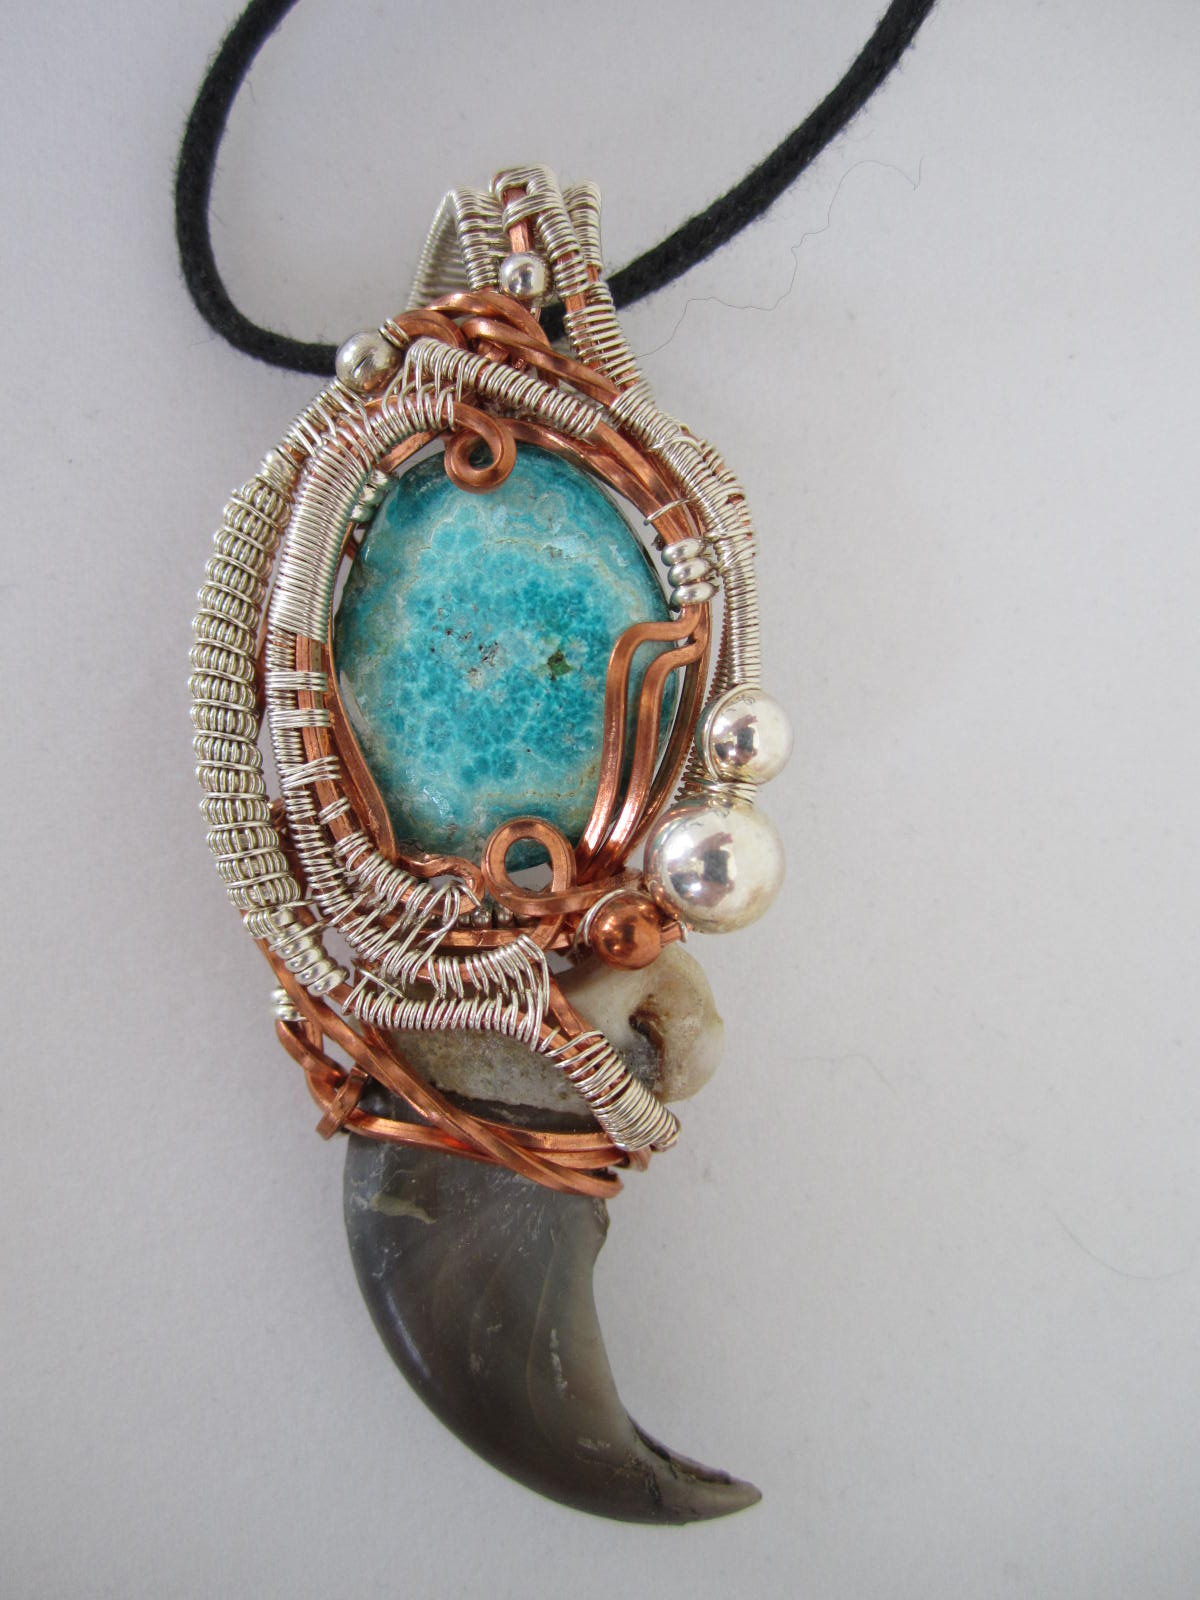 Chrysocholla and Black Bear Claw Wire Wrap Pendant | Bead Wold Beads